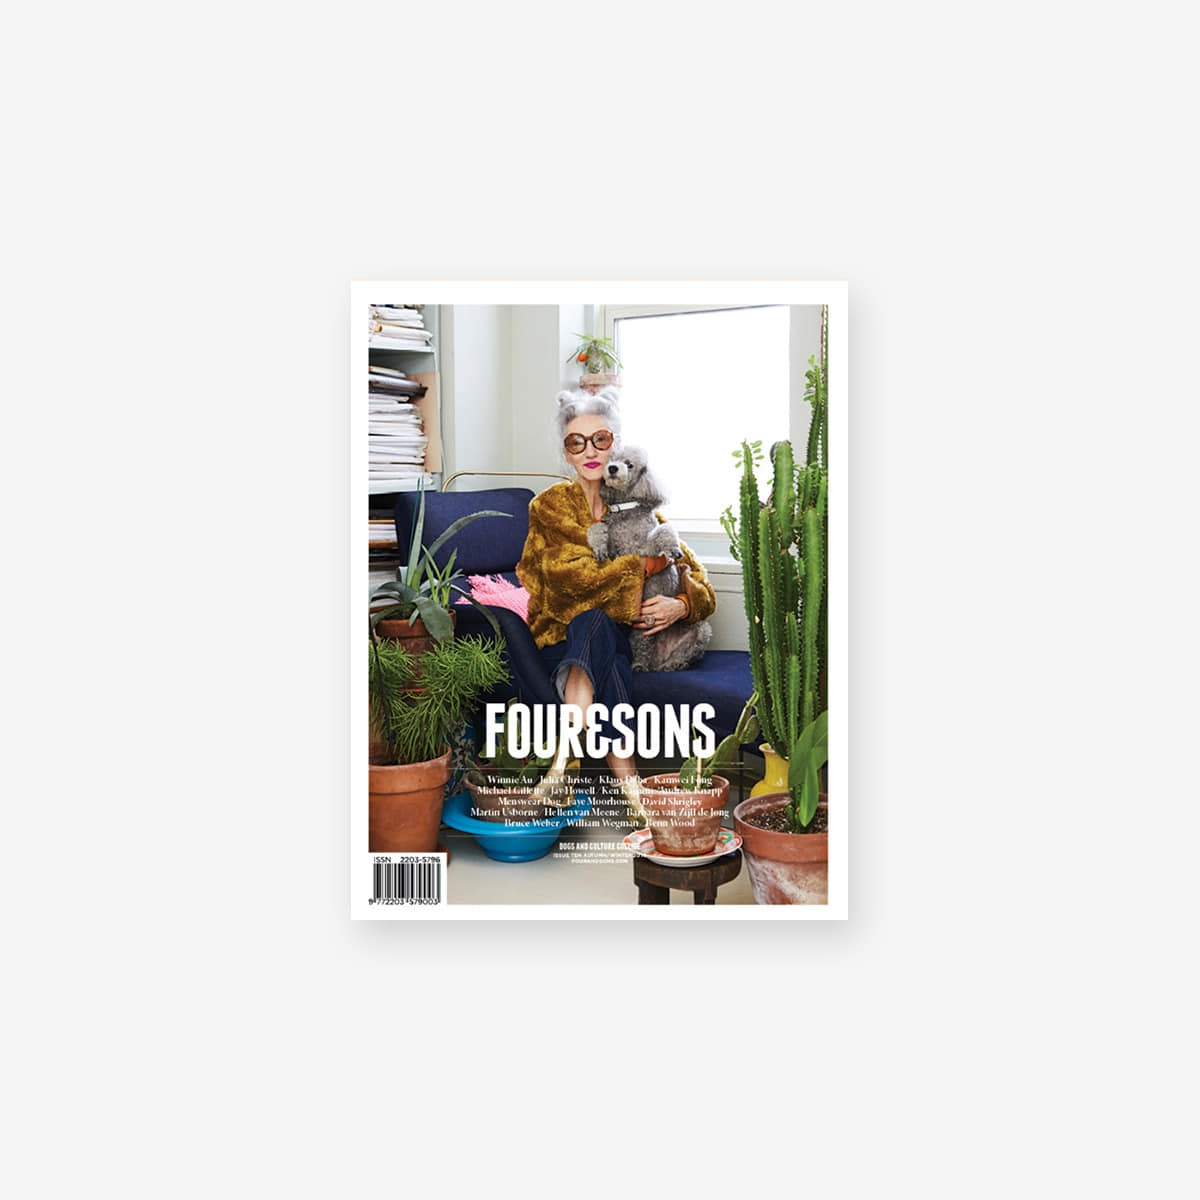 FOUR&SONS (ISSUE TEN - LR)